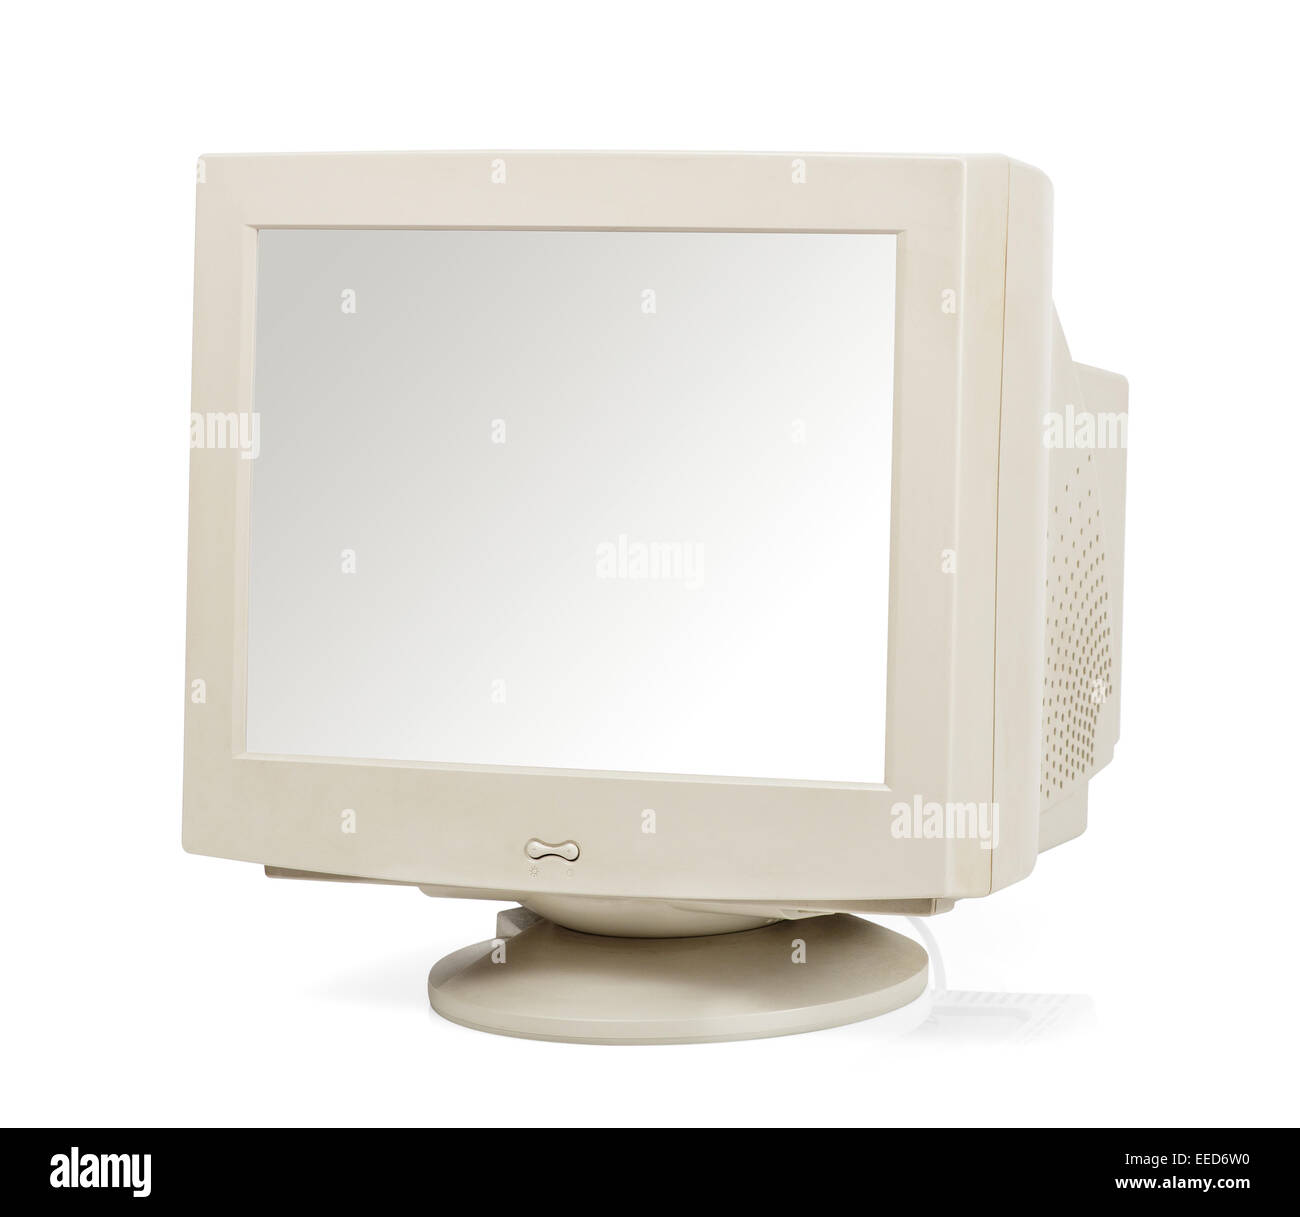 Vintage computer monitor isolated on white Photo Stock